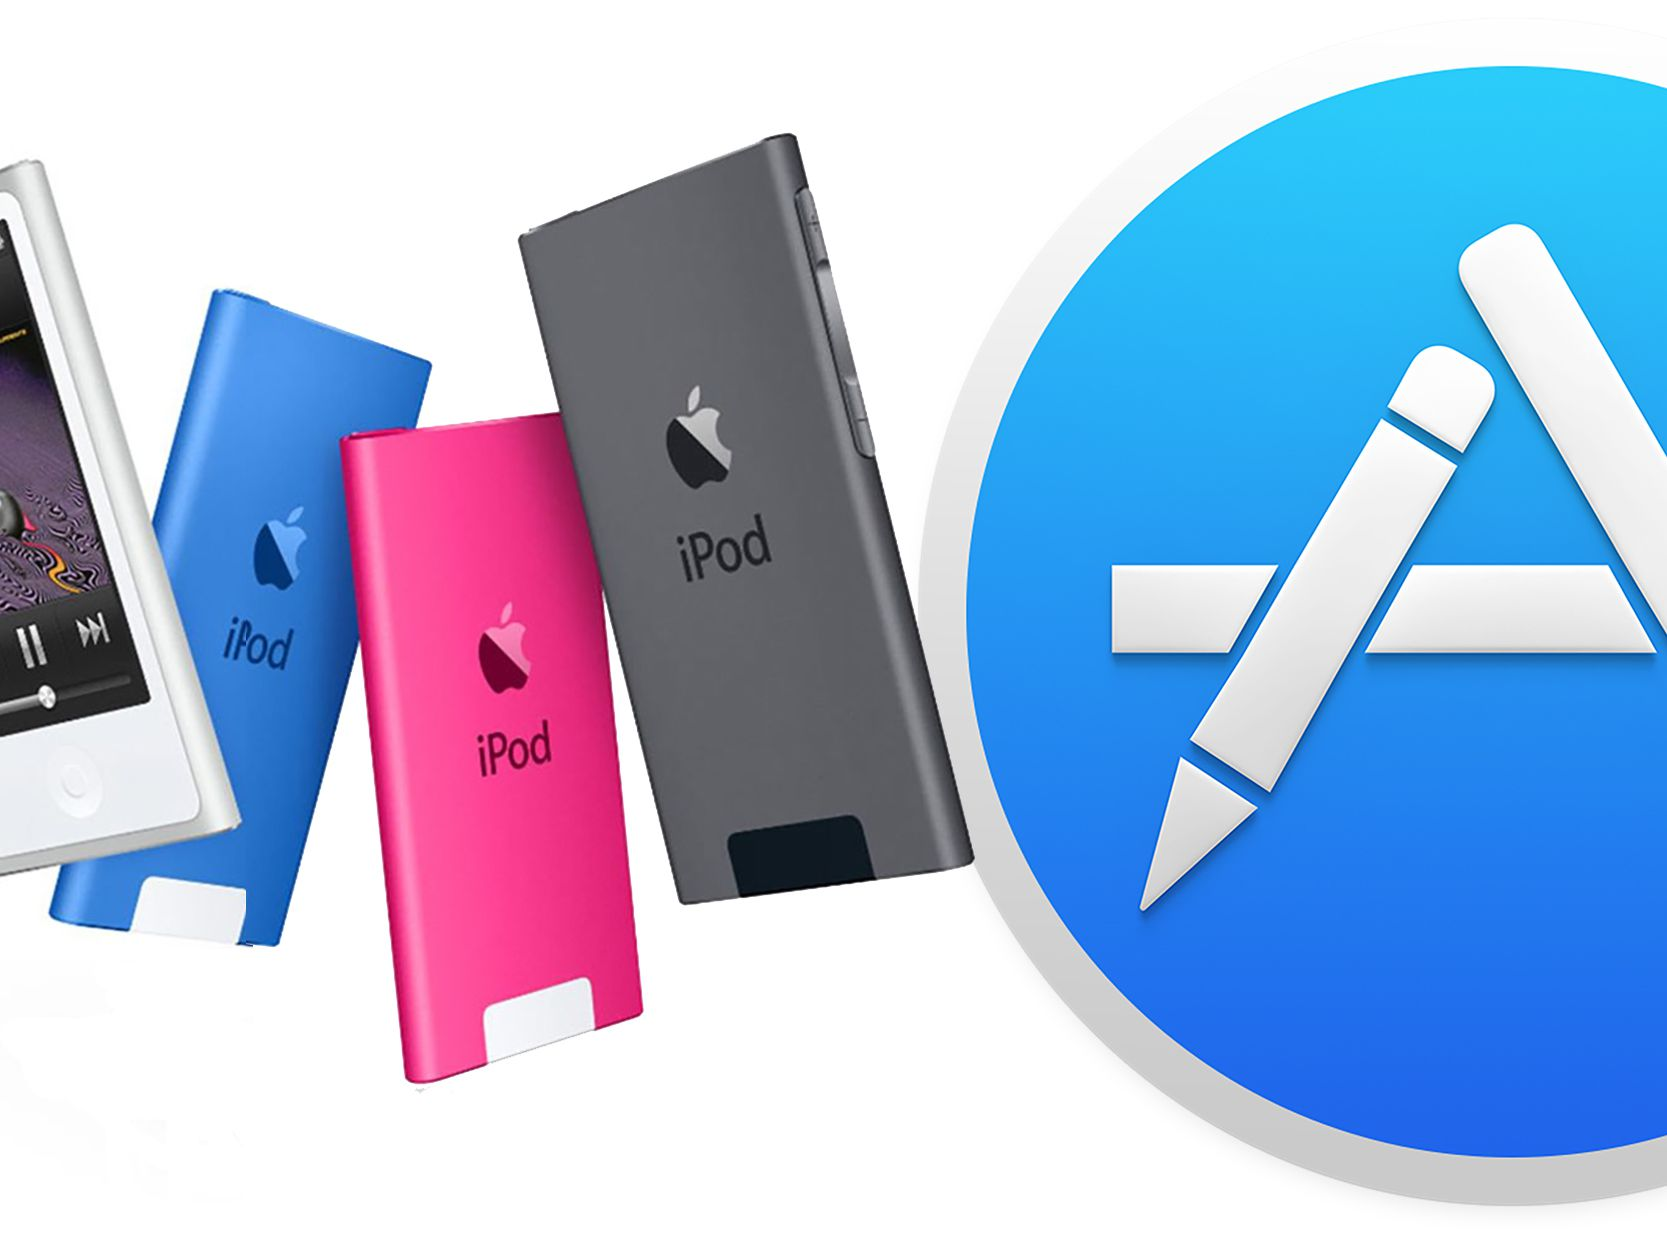 Can You Install Apps on the iPod nano?